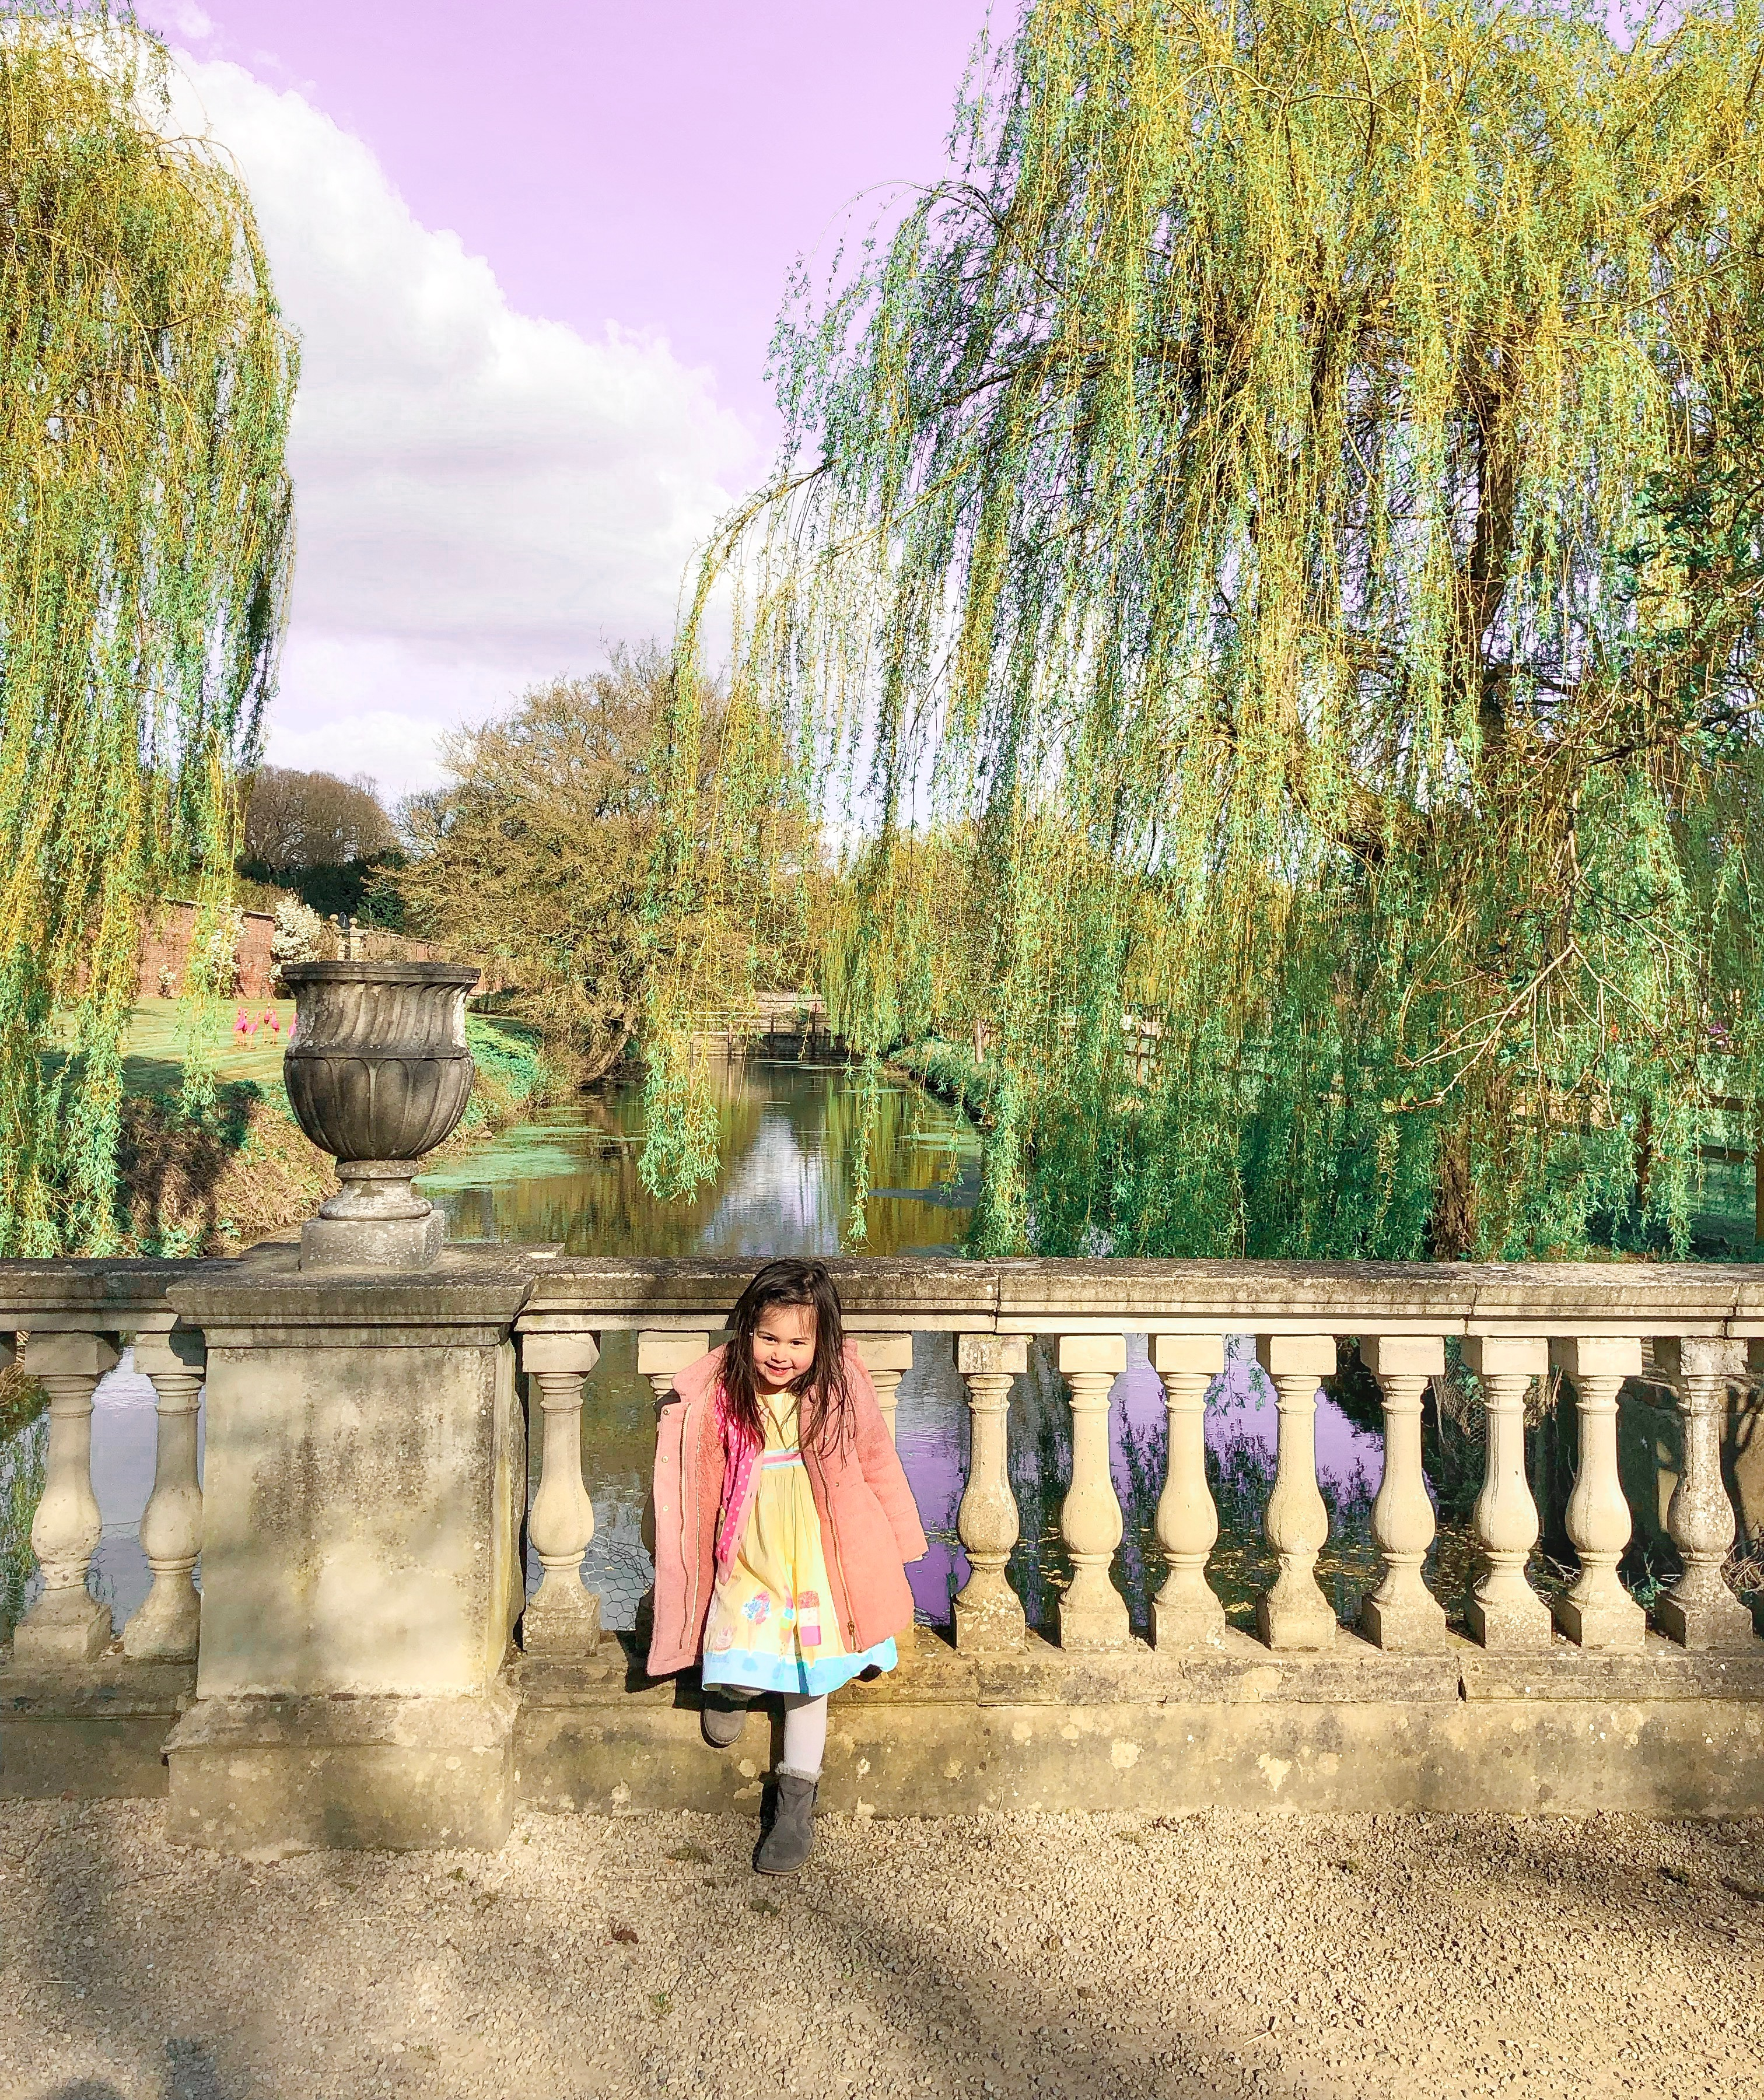 newby hall with kids toddlers